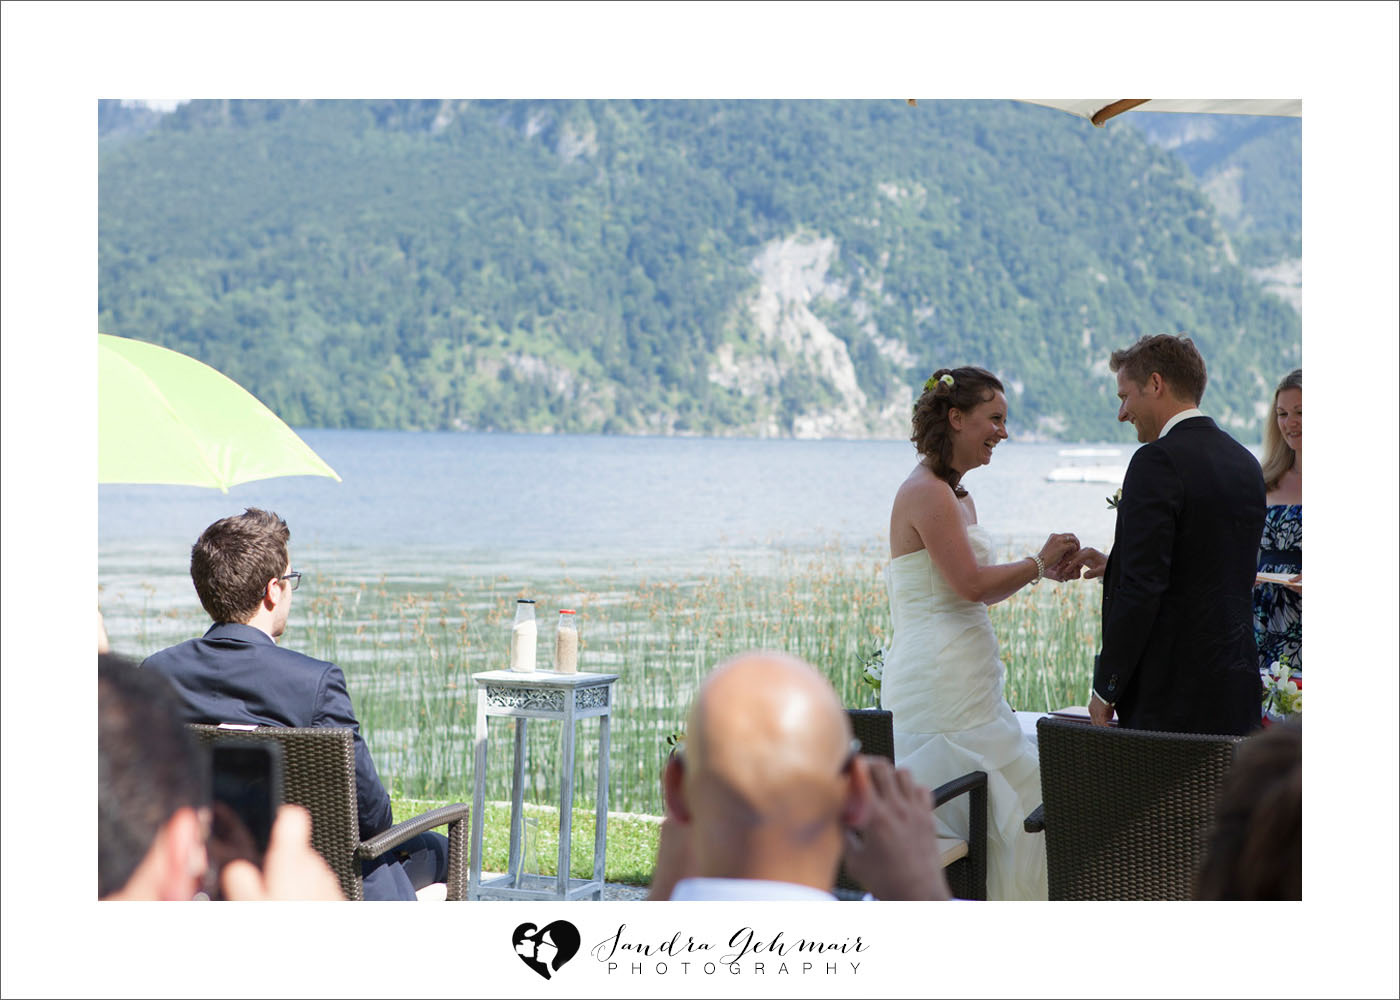 028_heiraten_am_see_spitzvilla_sandra_gehmair